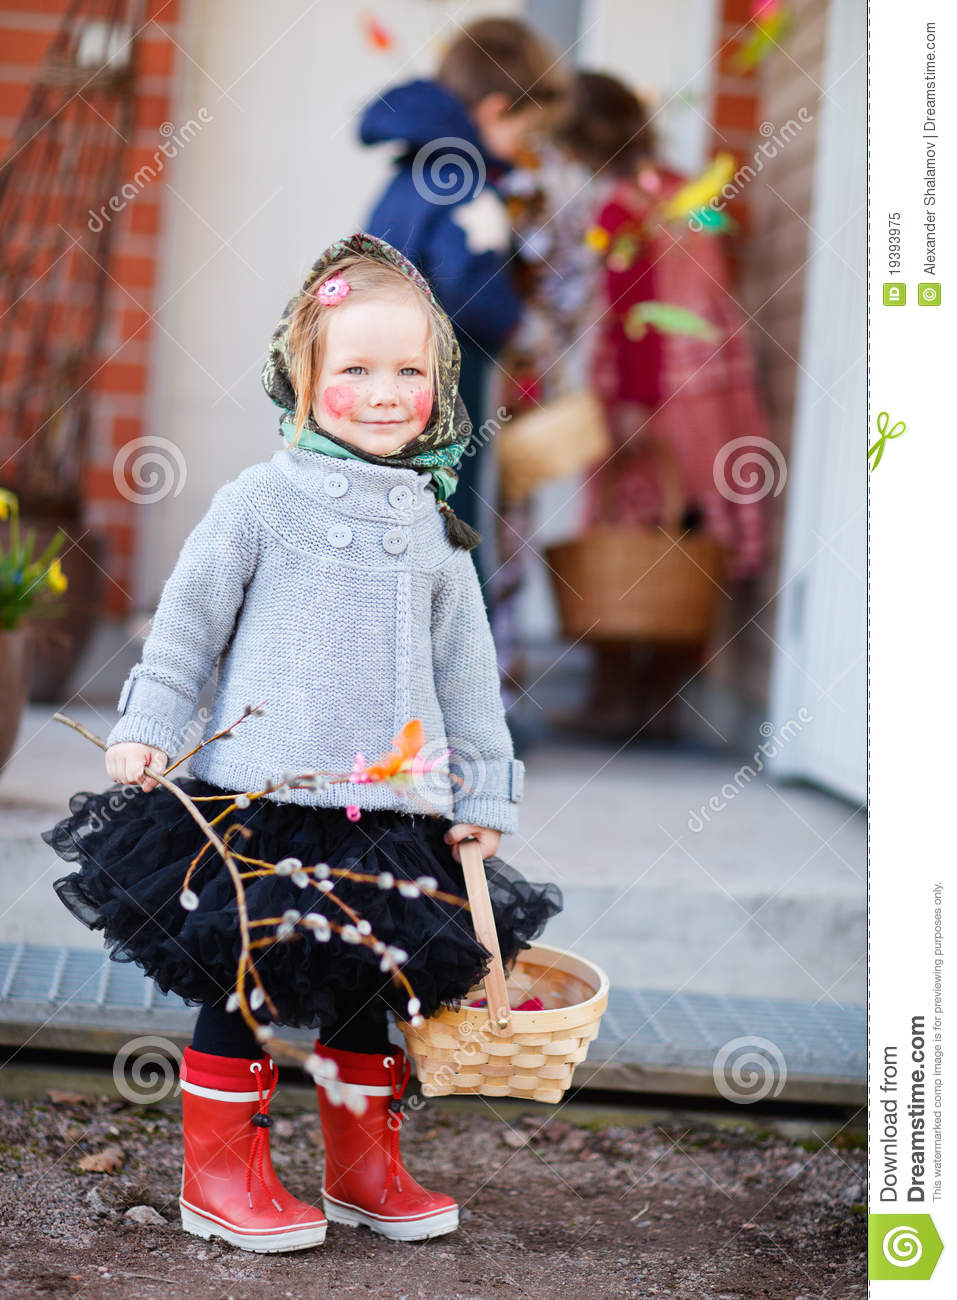 Easter Finnish Traditions Stock Image Image Of Female